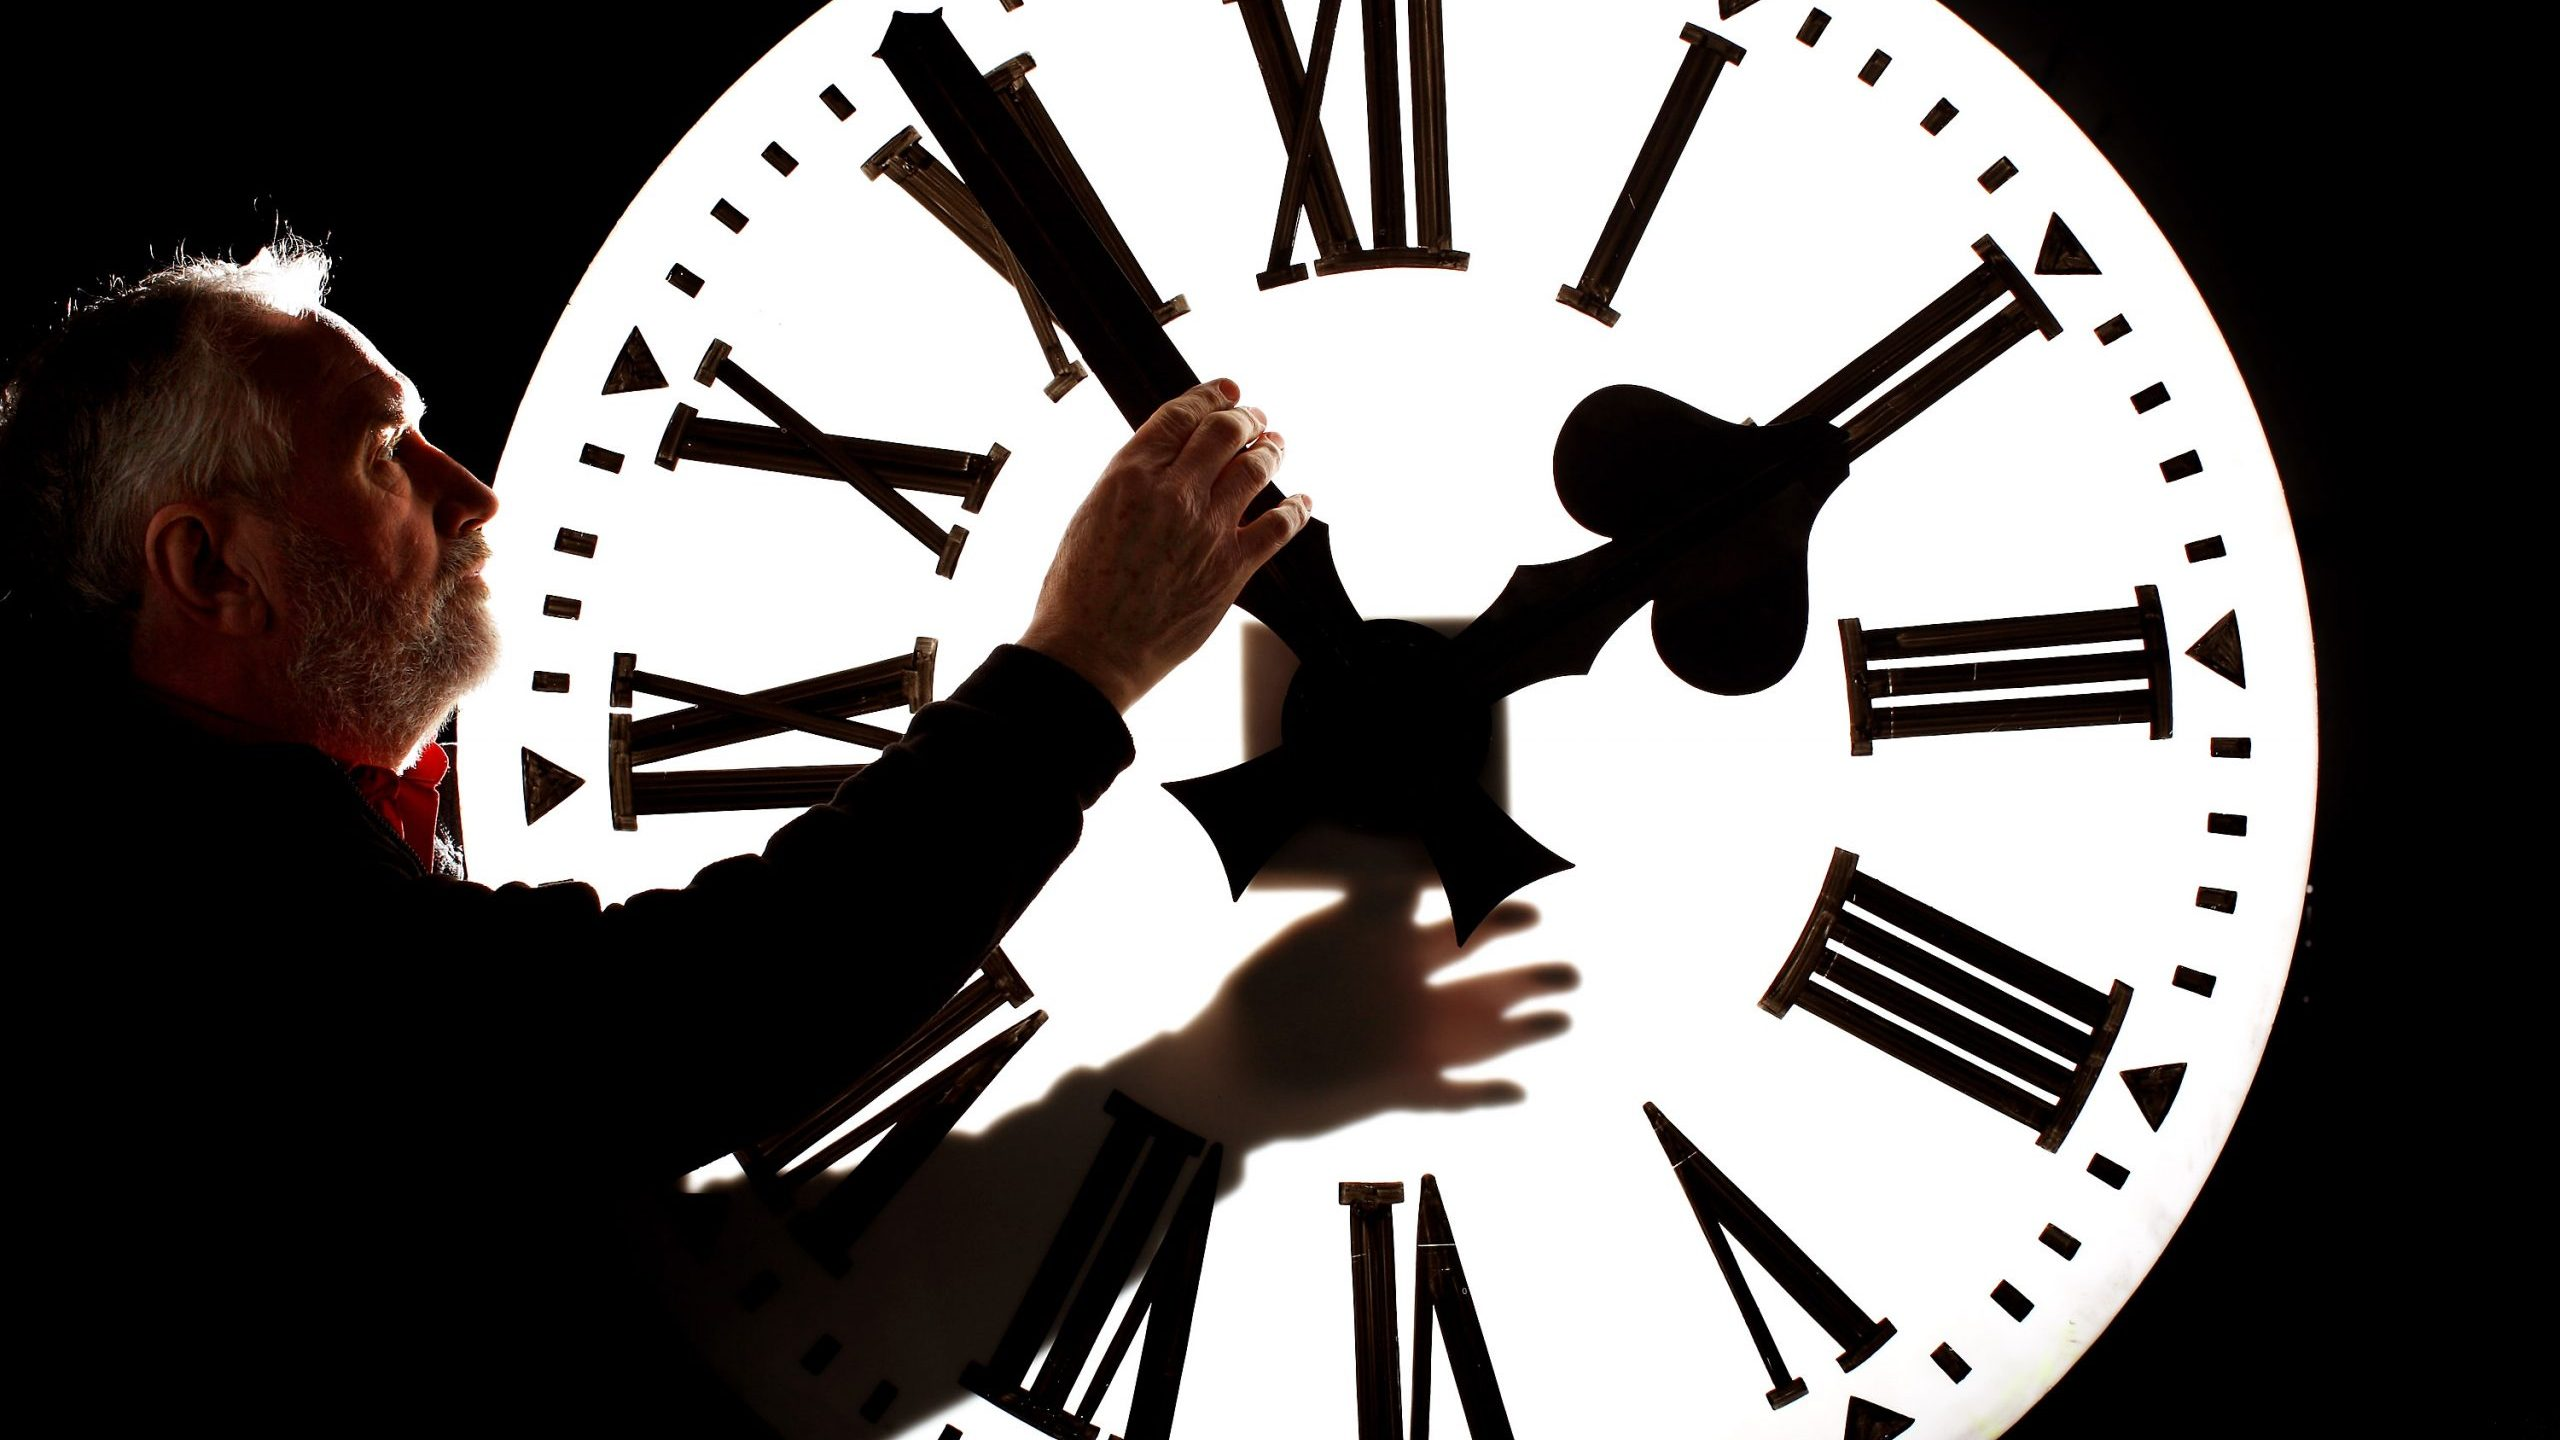 A man adjusts a clock on March 26, 2010, in Edinburgh, Scotland. (Credit: Jeff J Mitchell/Getty Images)